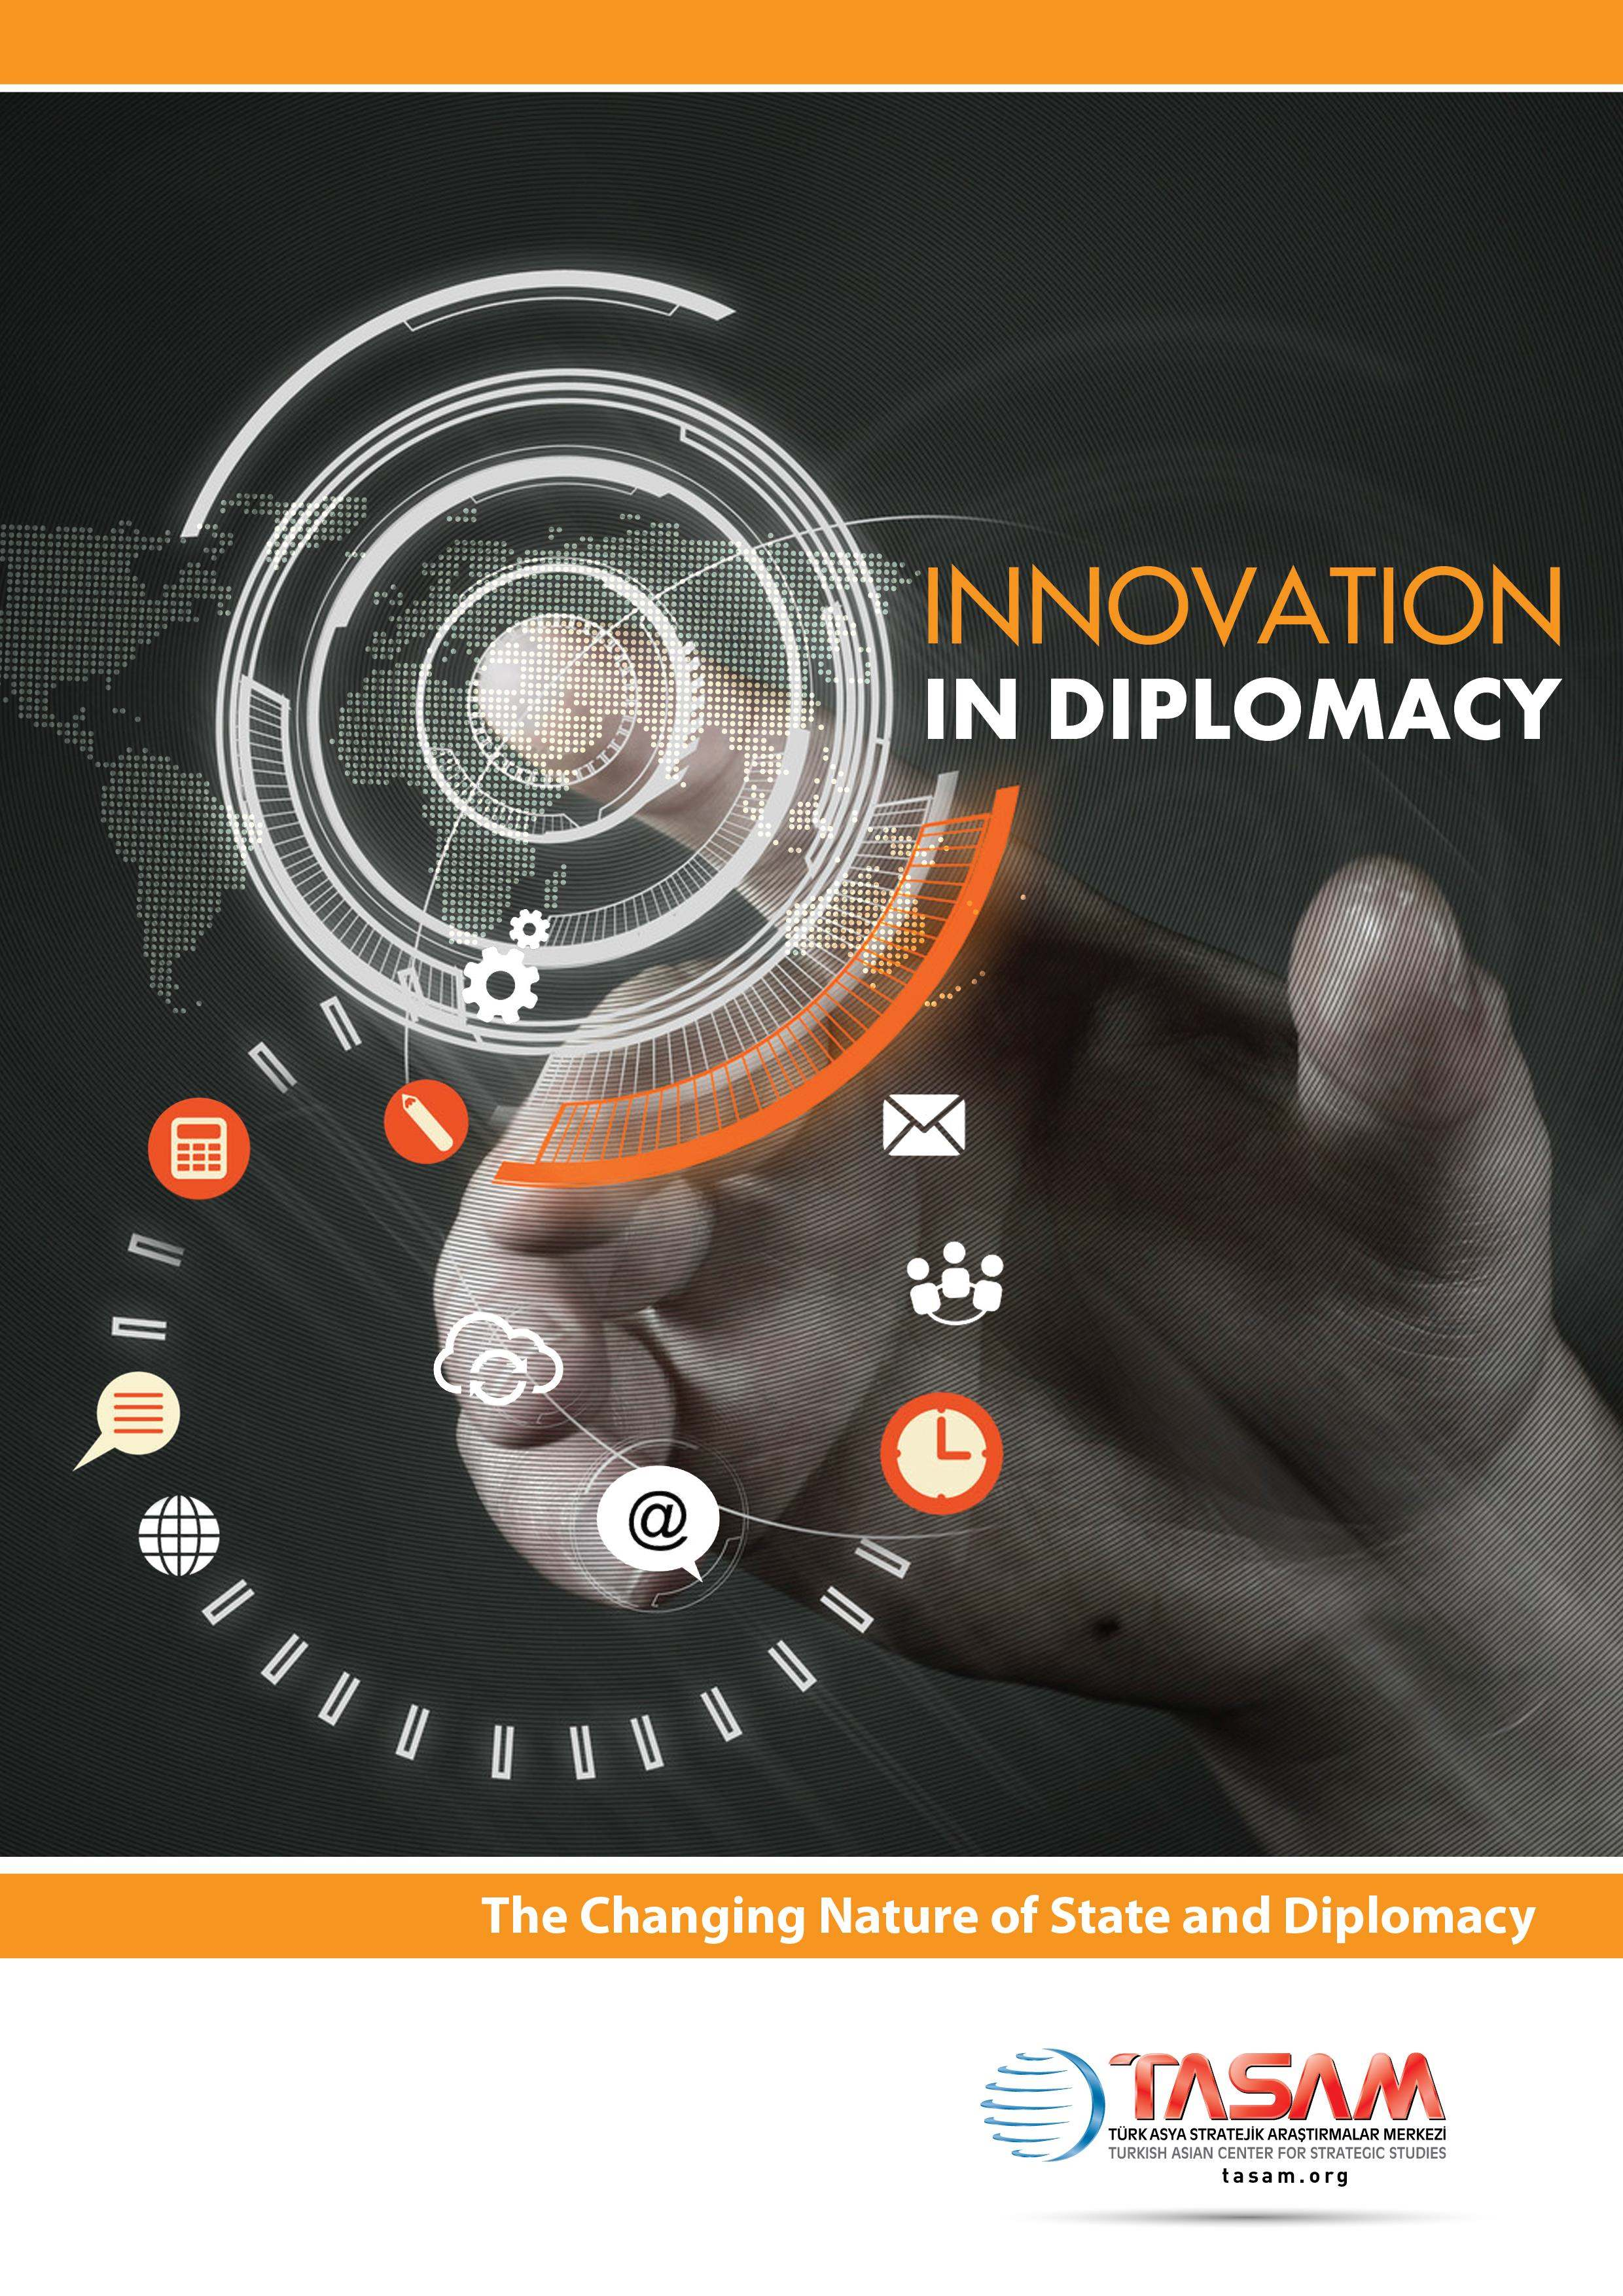 Innovation in Diplomacy Meeting